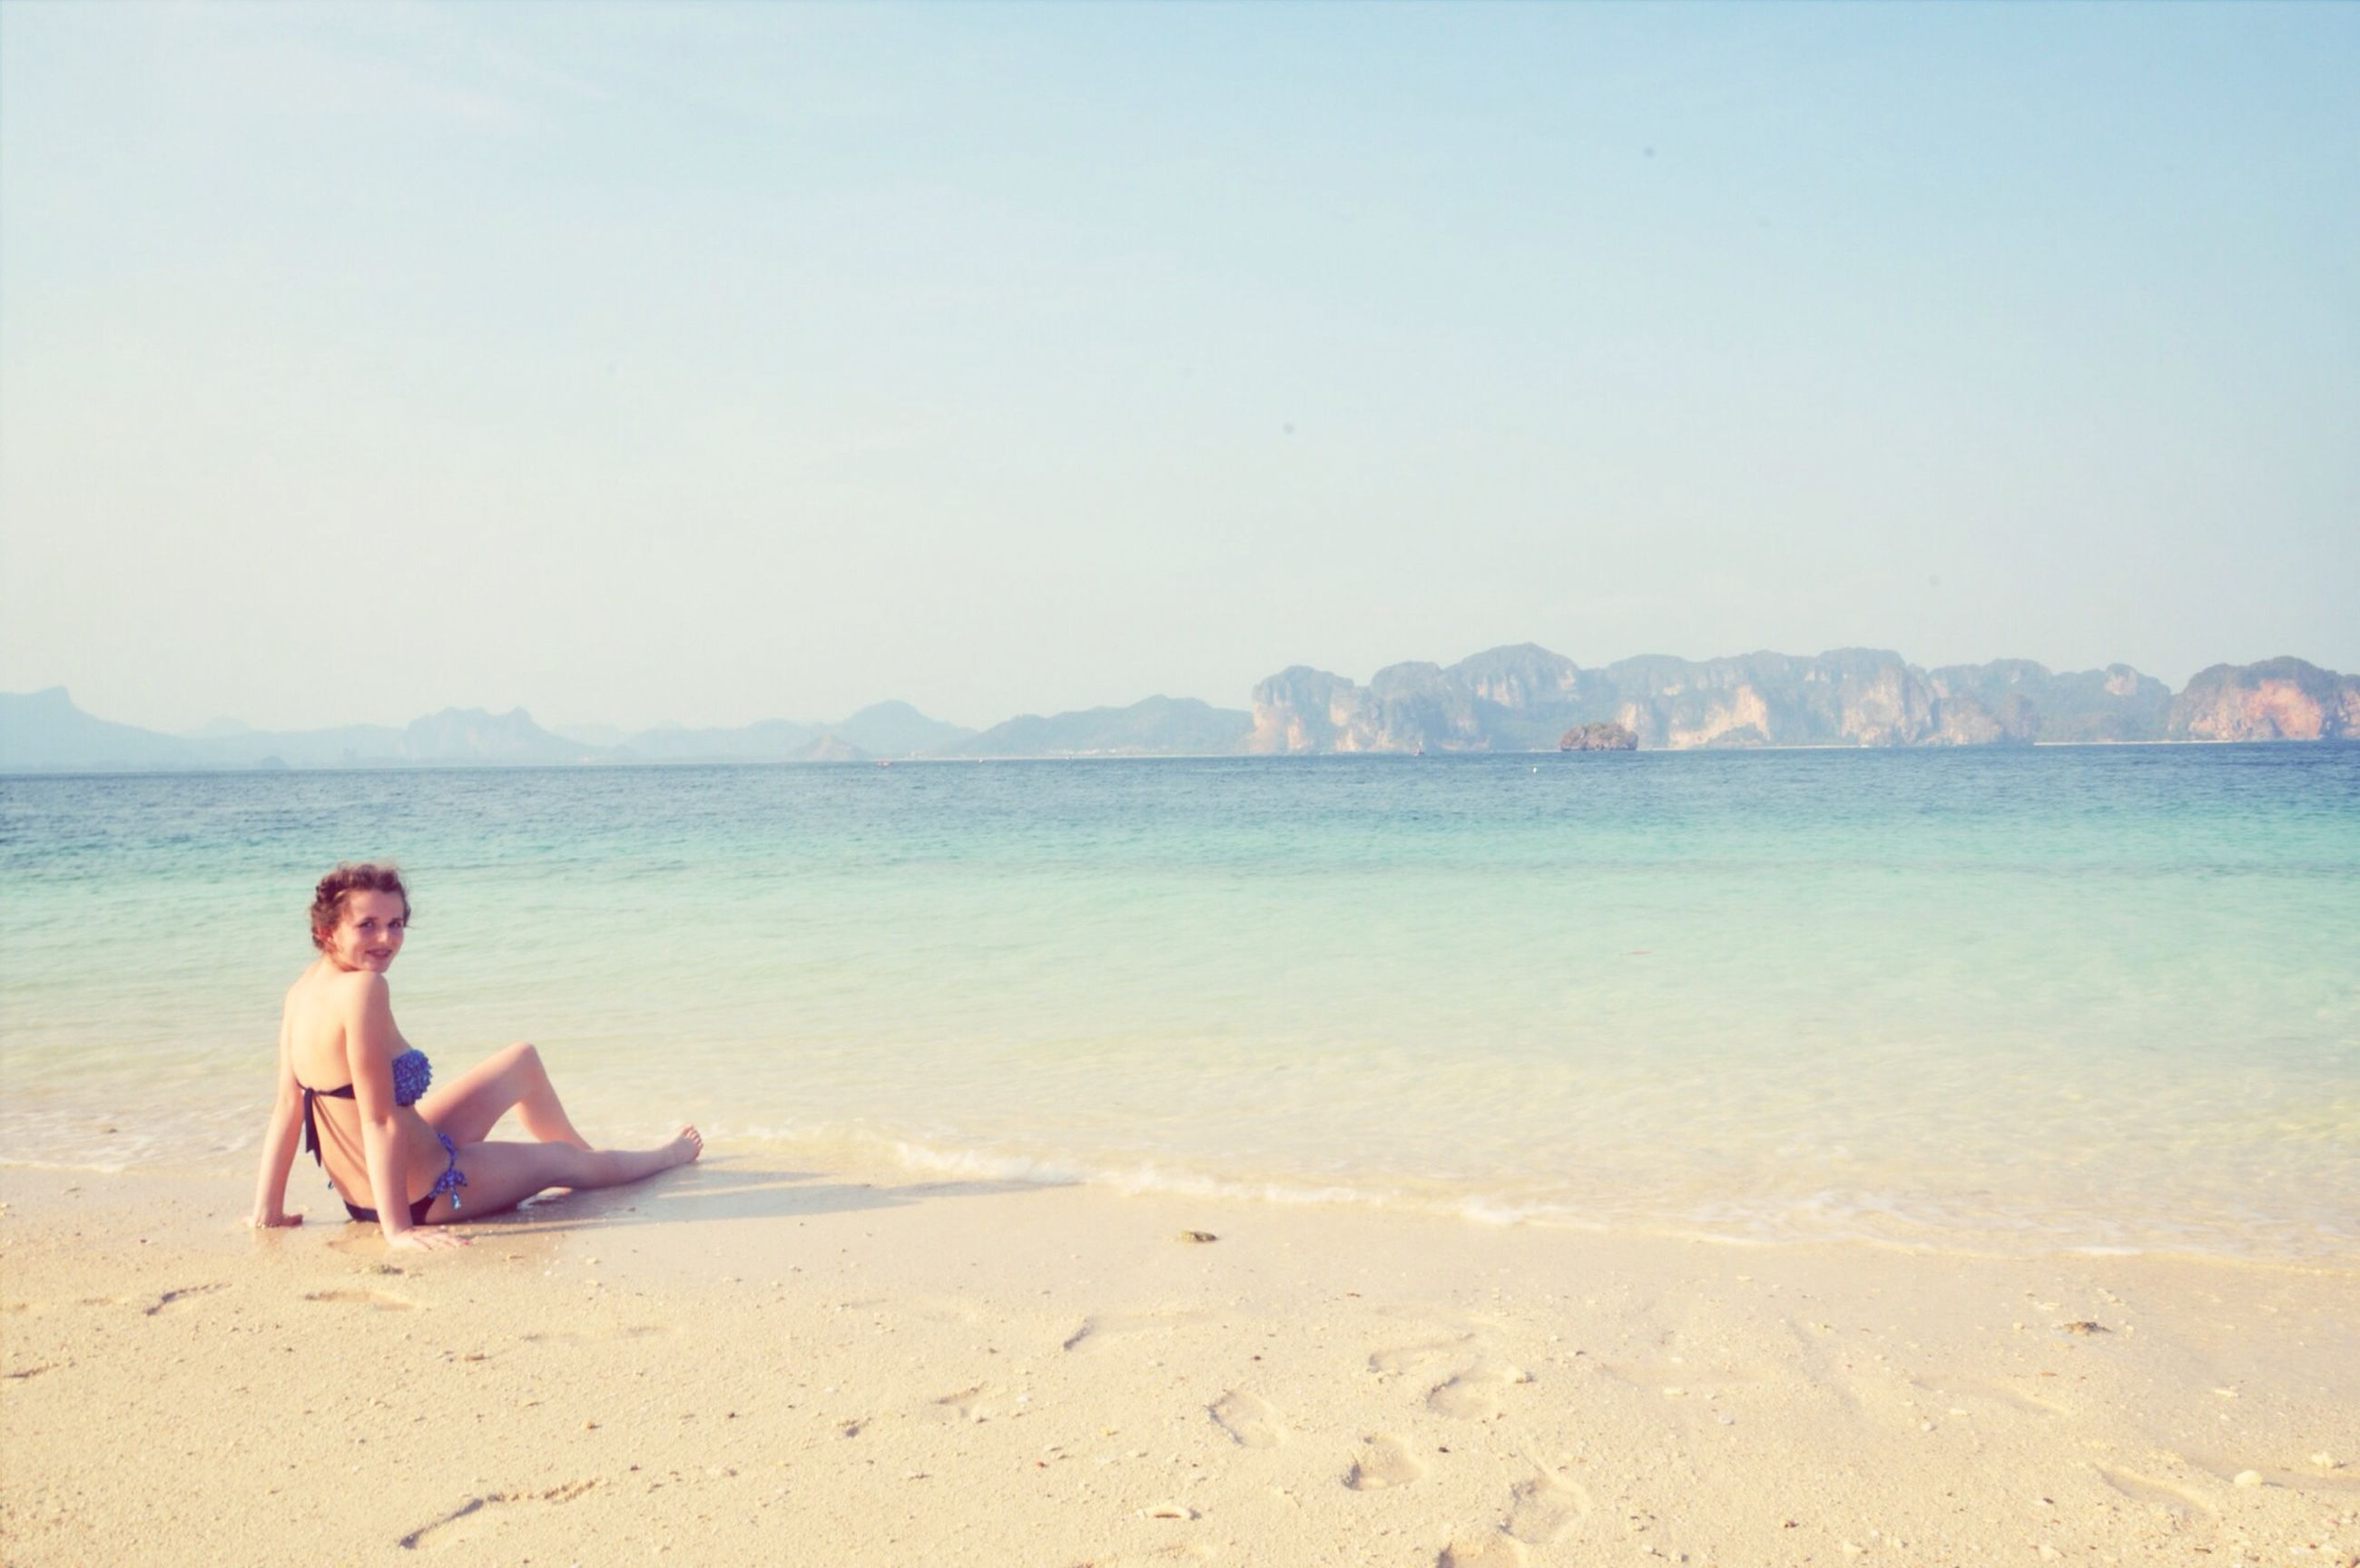 beach, sand, sea, shore, water, clear sky, vacations, leisure activity, lifestyles, relaxation, tranquility, tranquil scene, copy space, scenics, beauty in nature, sitting, horizon over water, nature